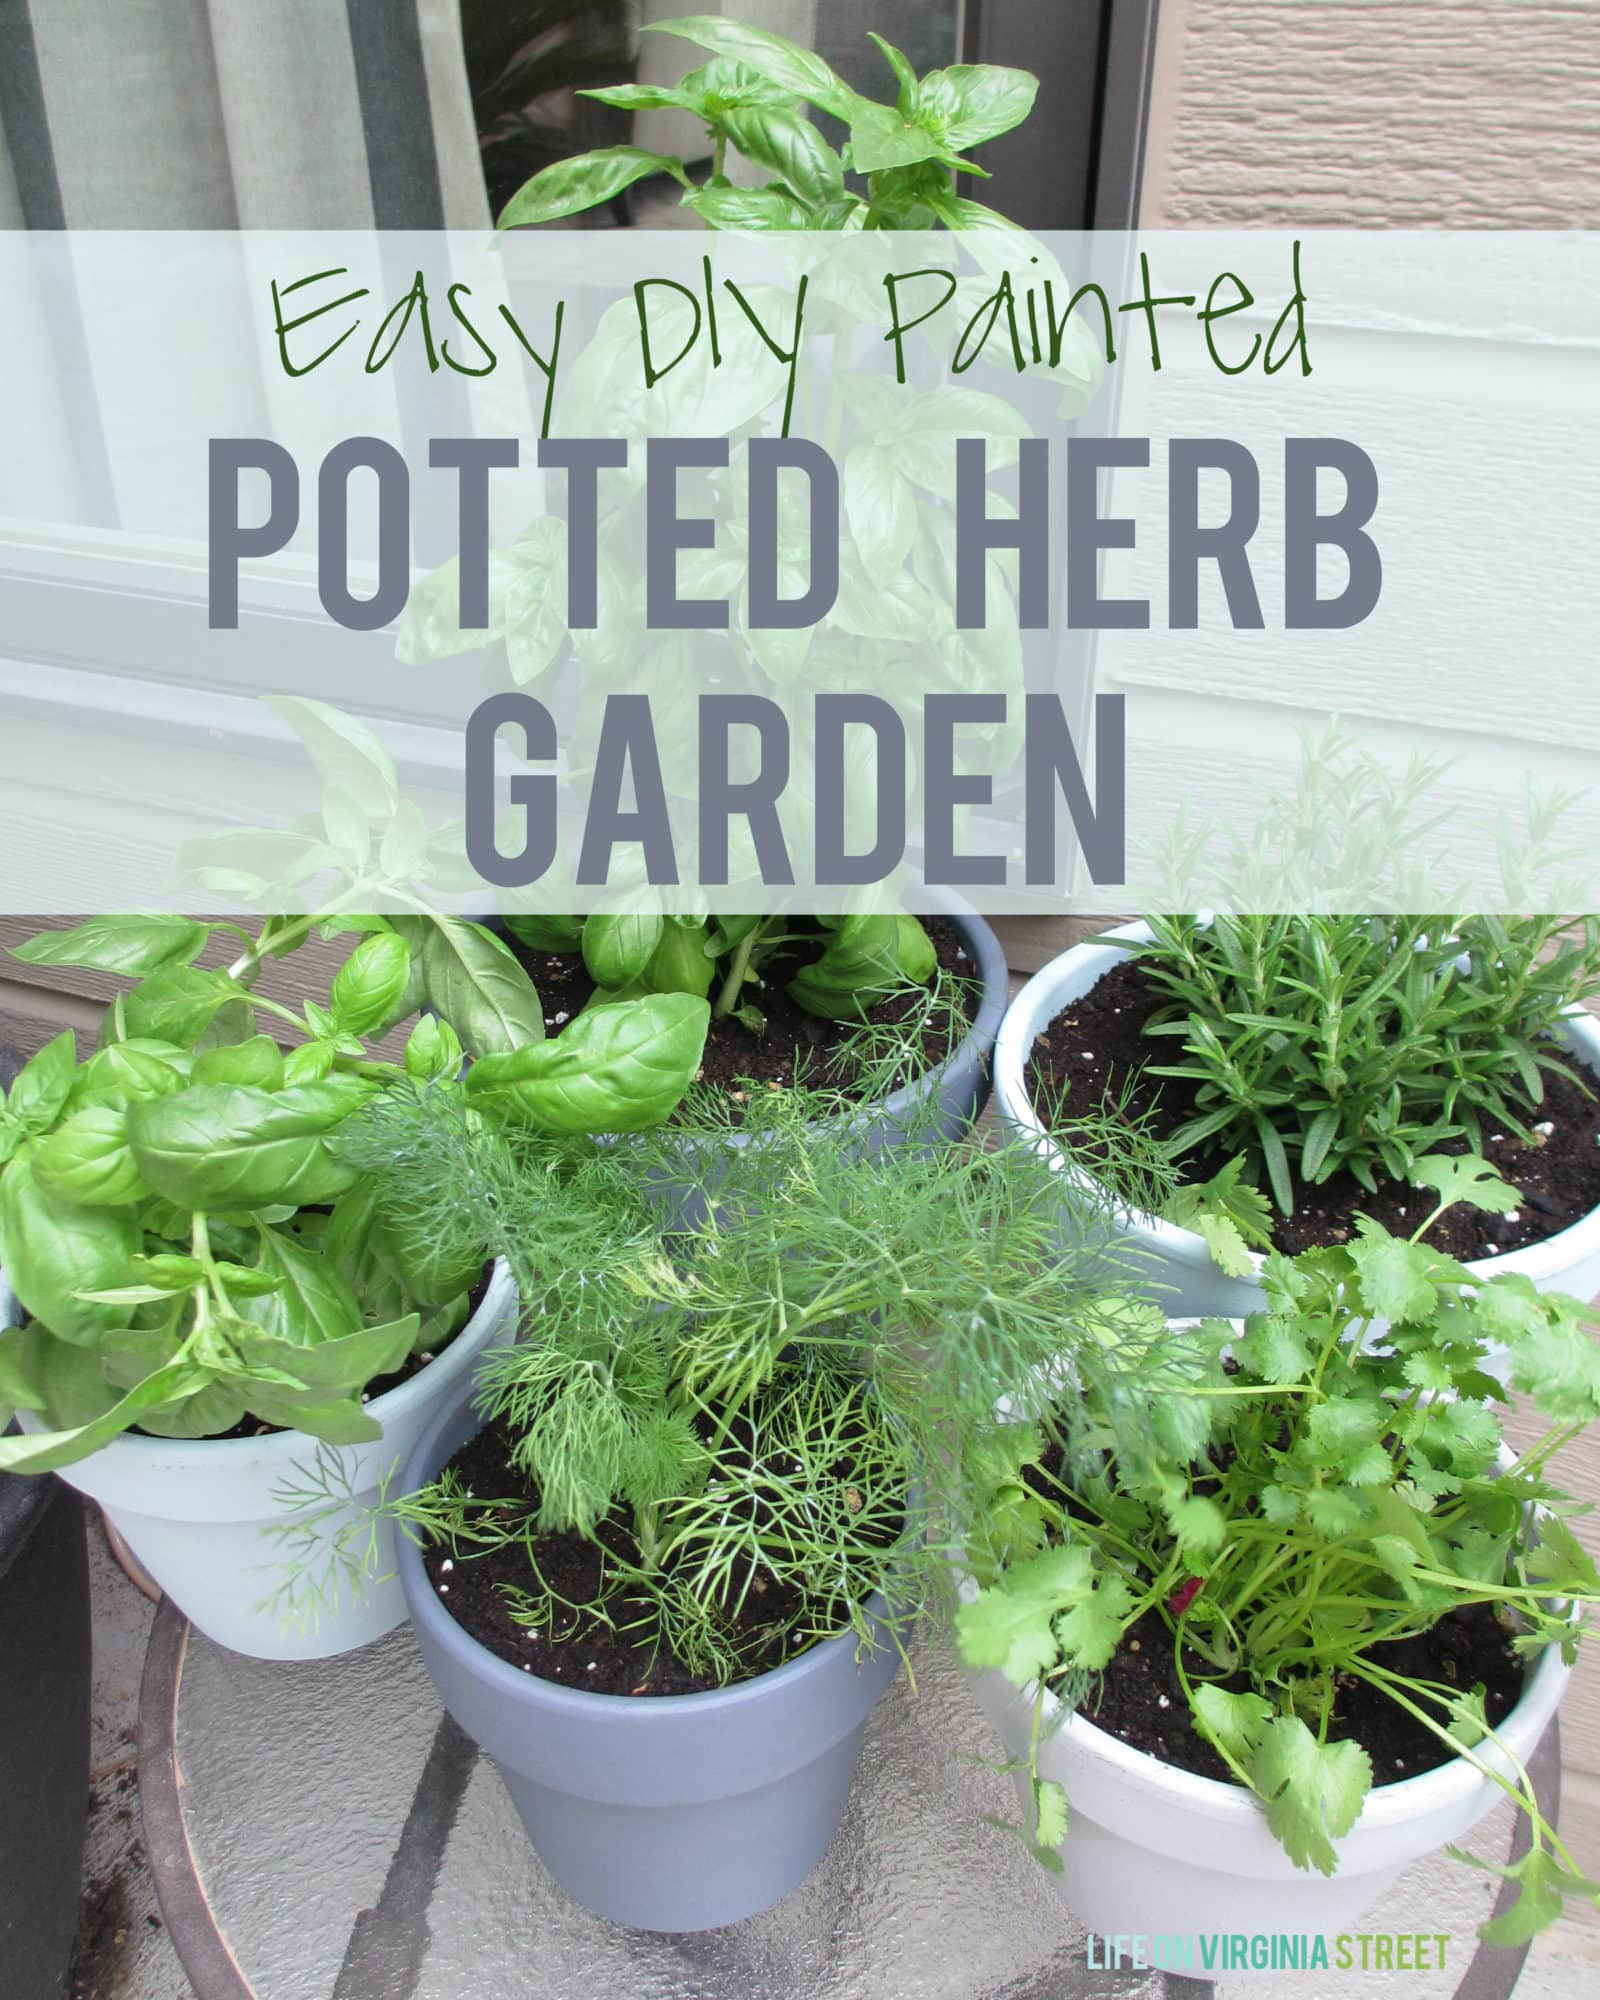 Potted Herb Garden Ideas heres one idea ive posted previously try growing your own herbs in this diy stacked potted herb garden not only will it spruce up your outdoor space Diy Painted Potted Herb Garden